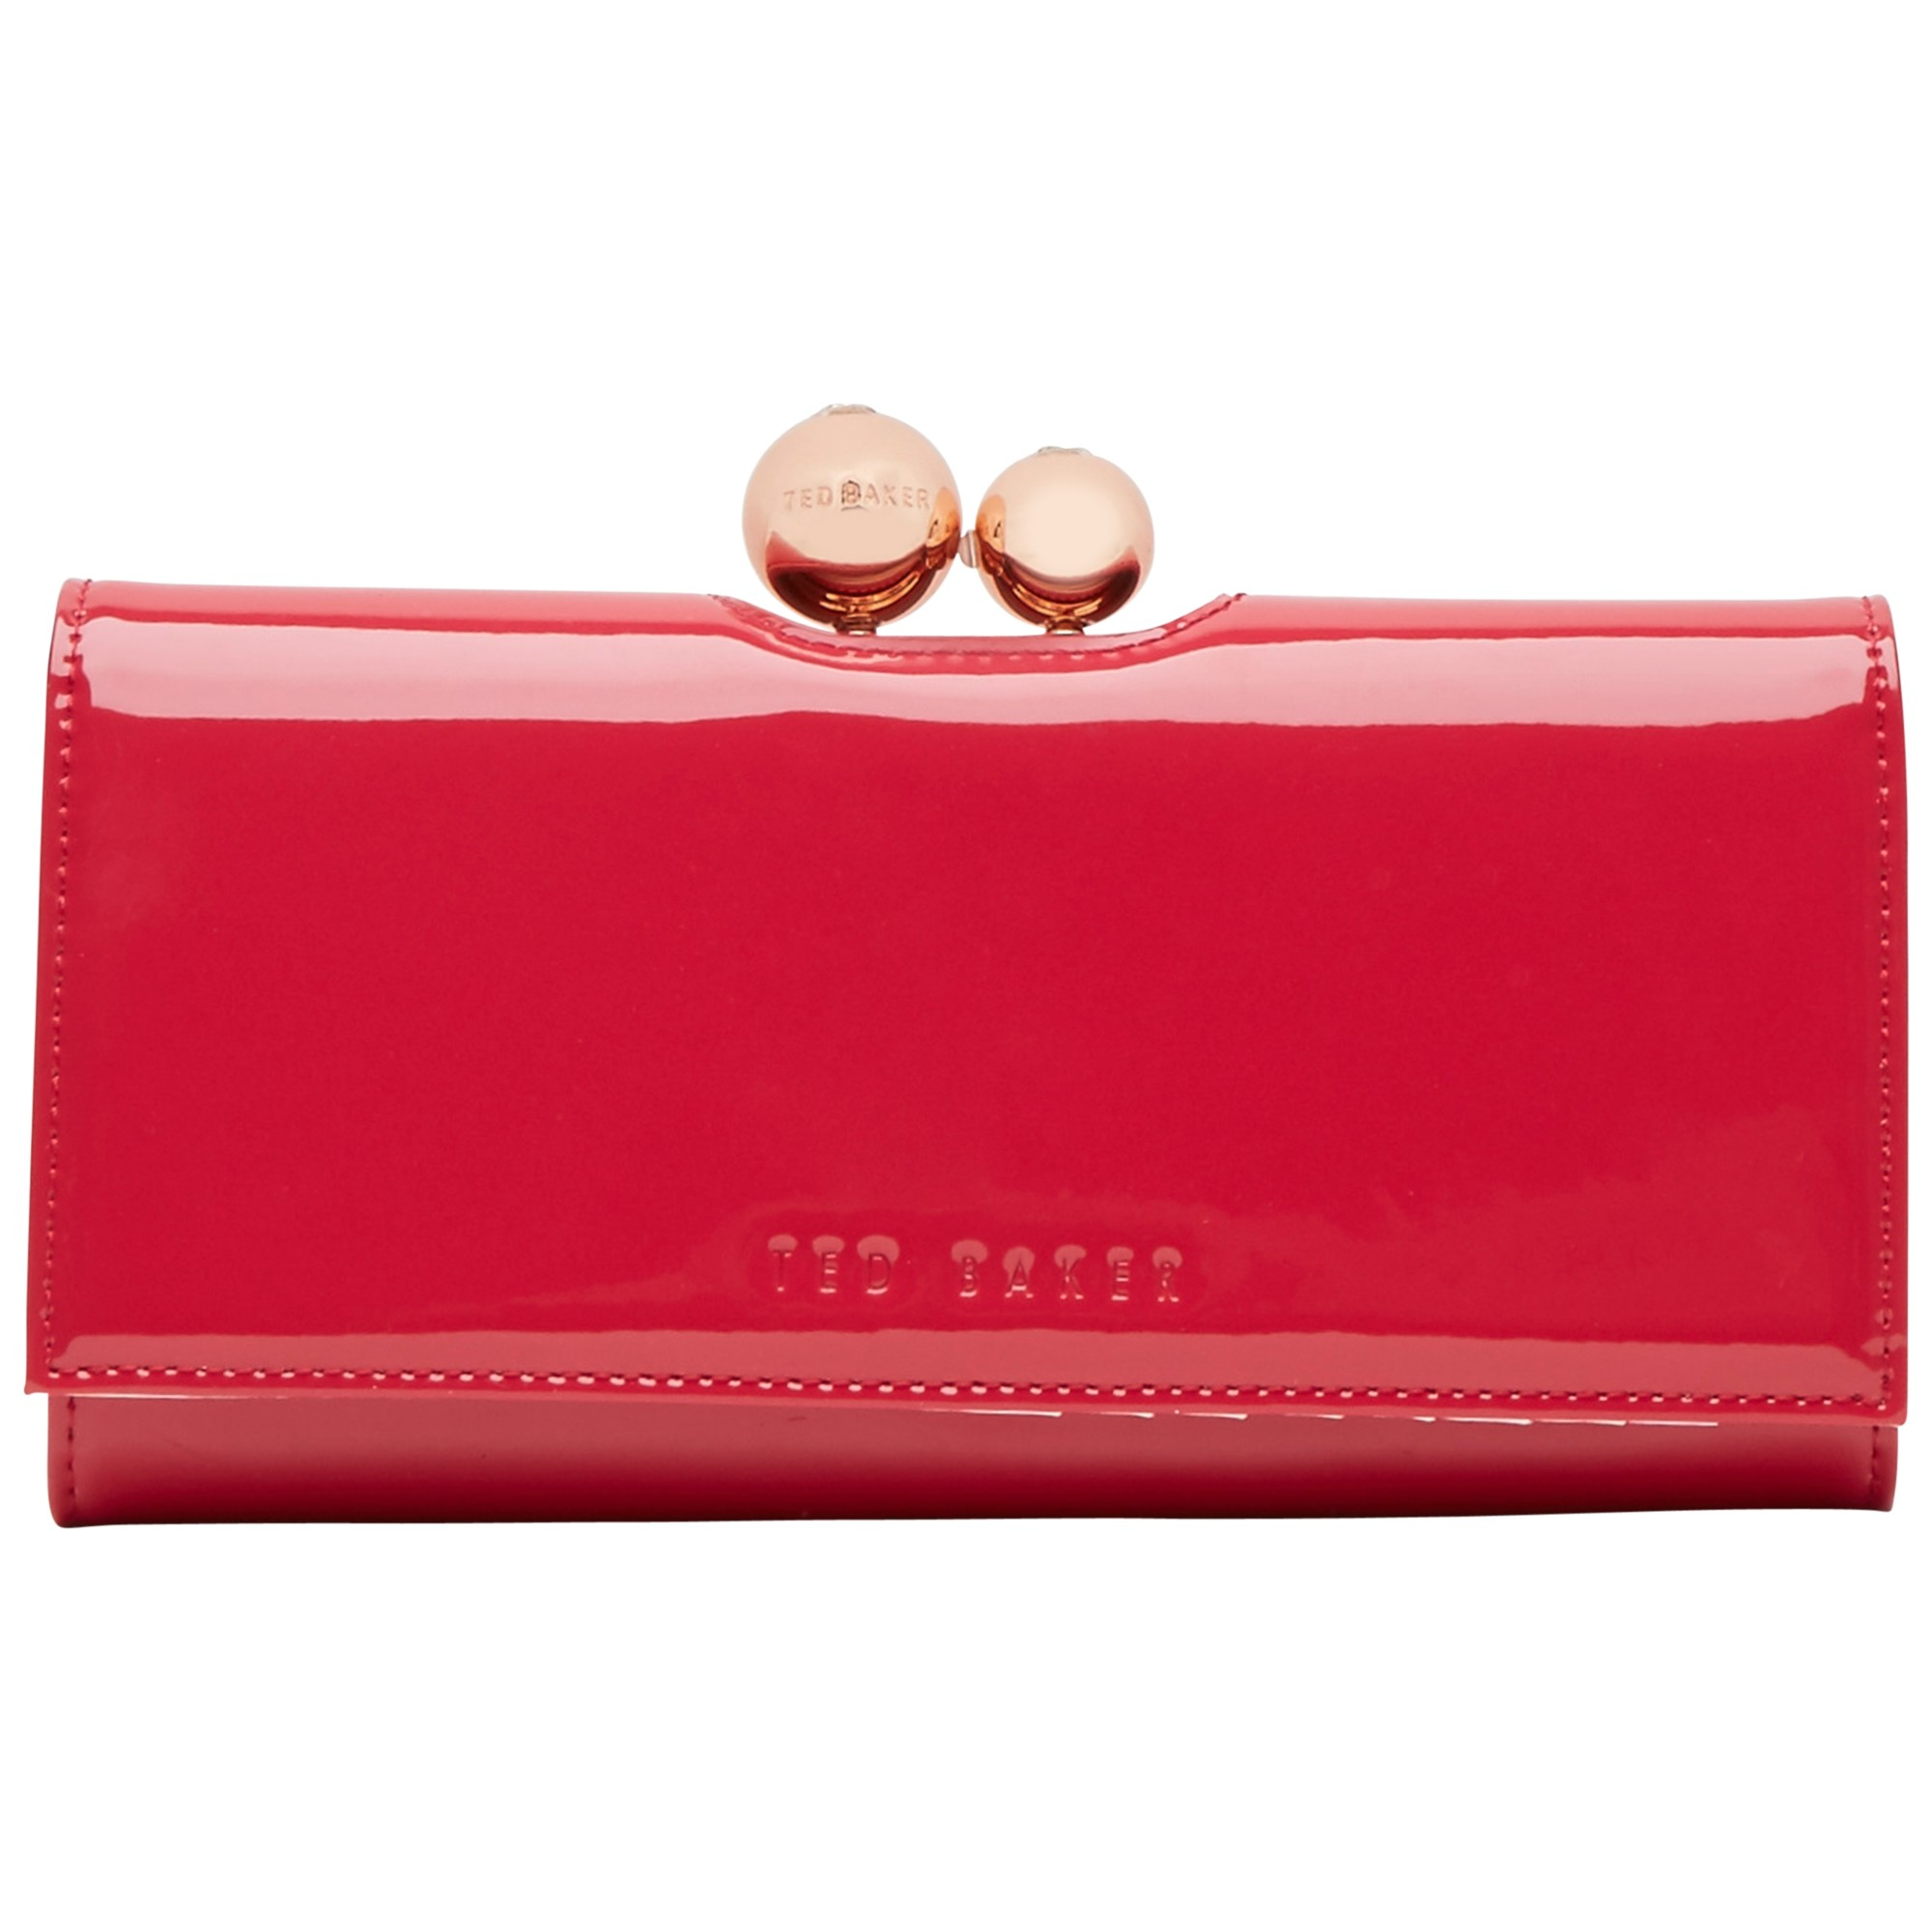 f3c818f1ec8cb5 Ted Baker Crystal Pearl Leather Matinee Purse - Best Purse Image ...